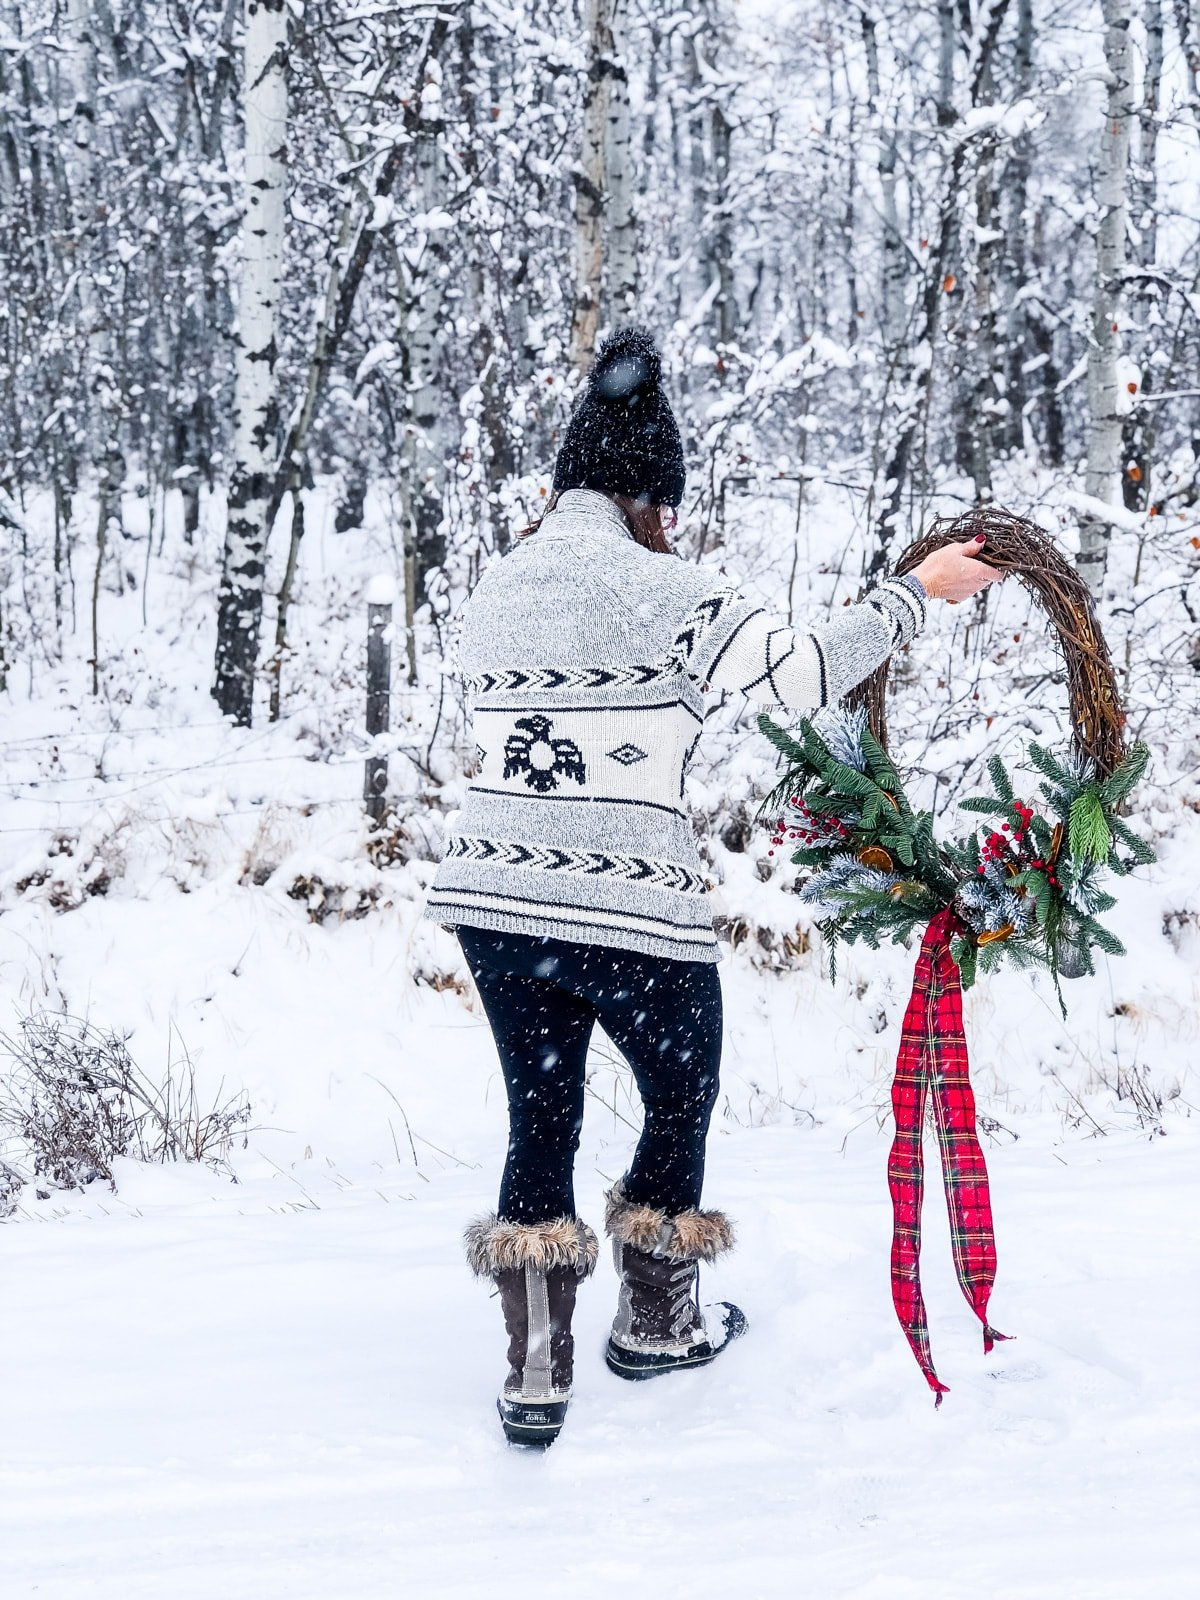 A woman walking away into a snowy forest while holding a Giant Evergreen Wreath with Plaid and Dried Oranges